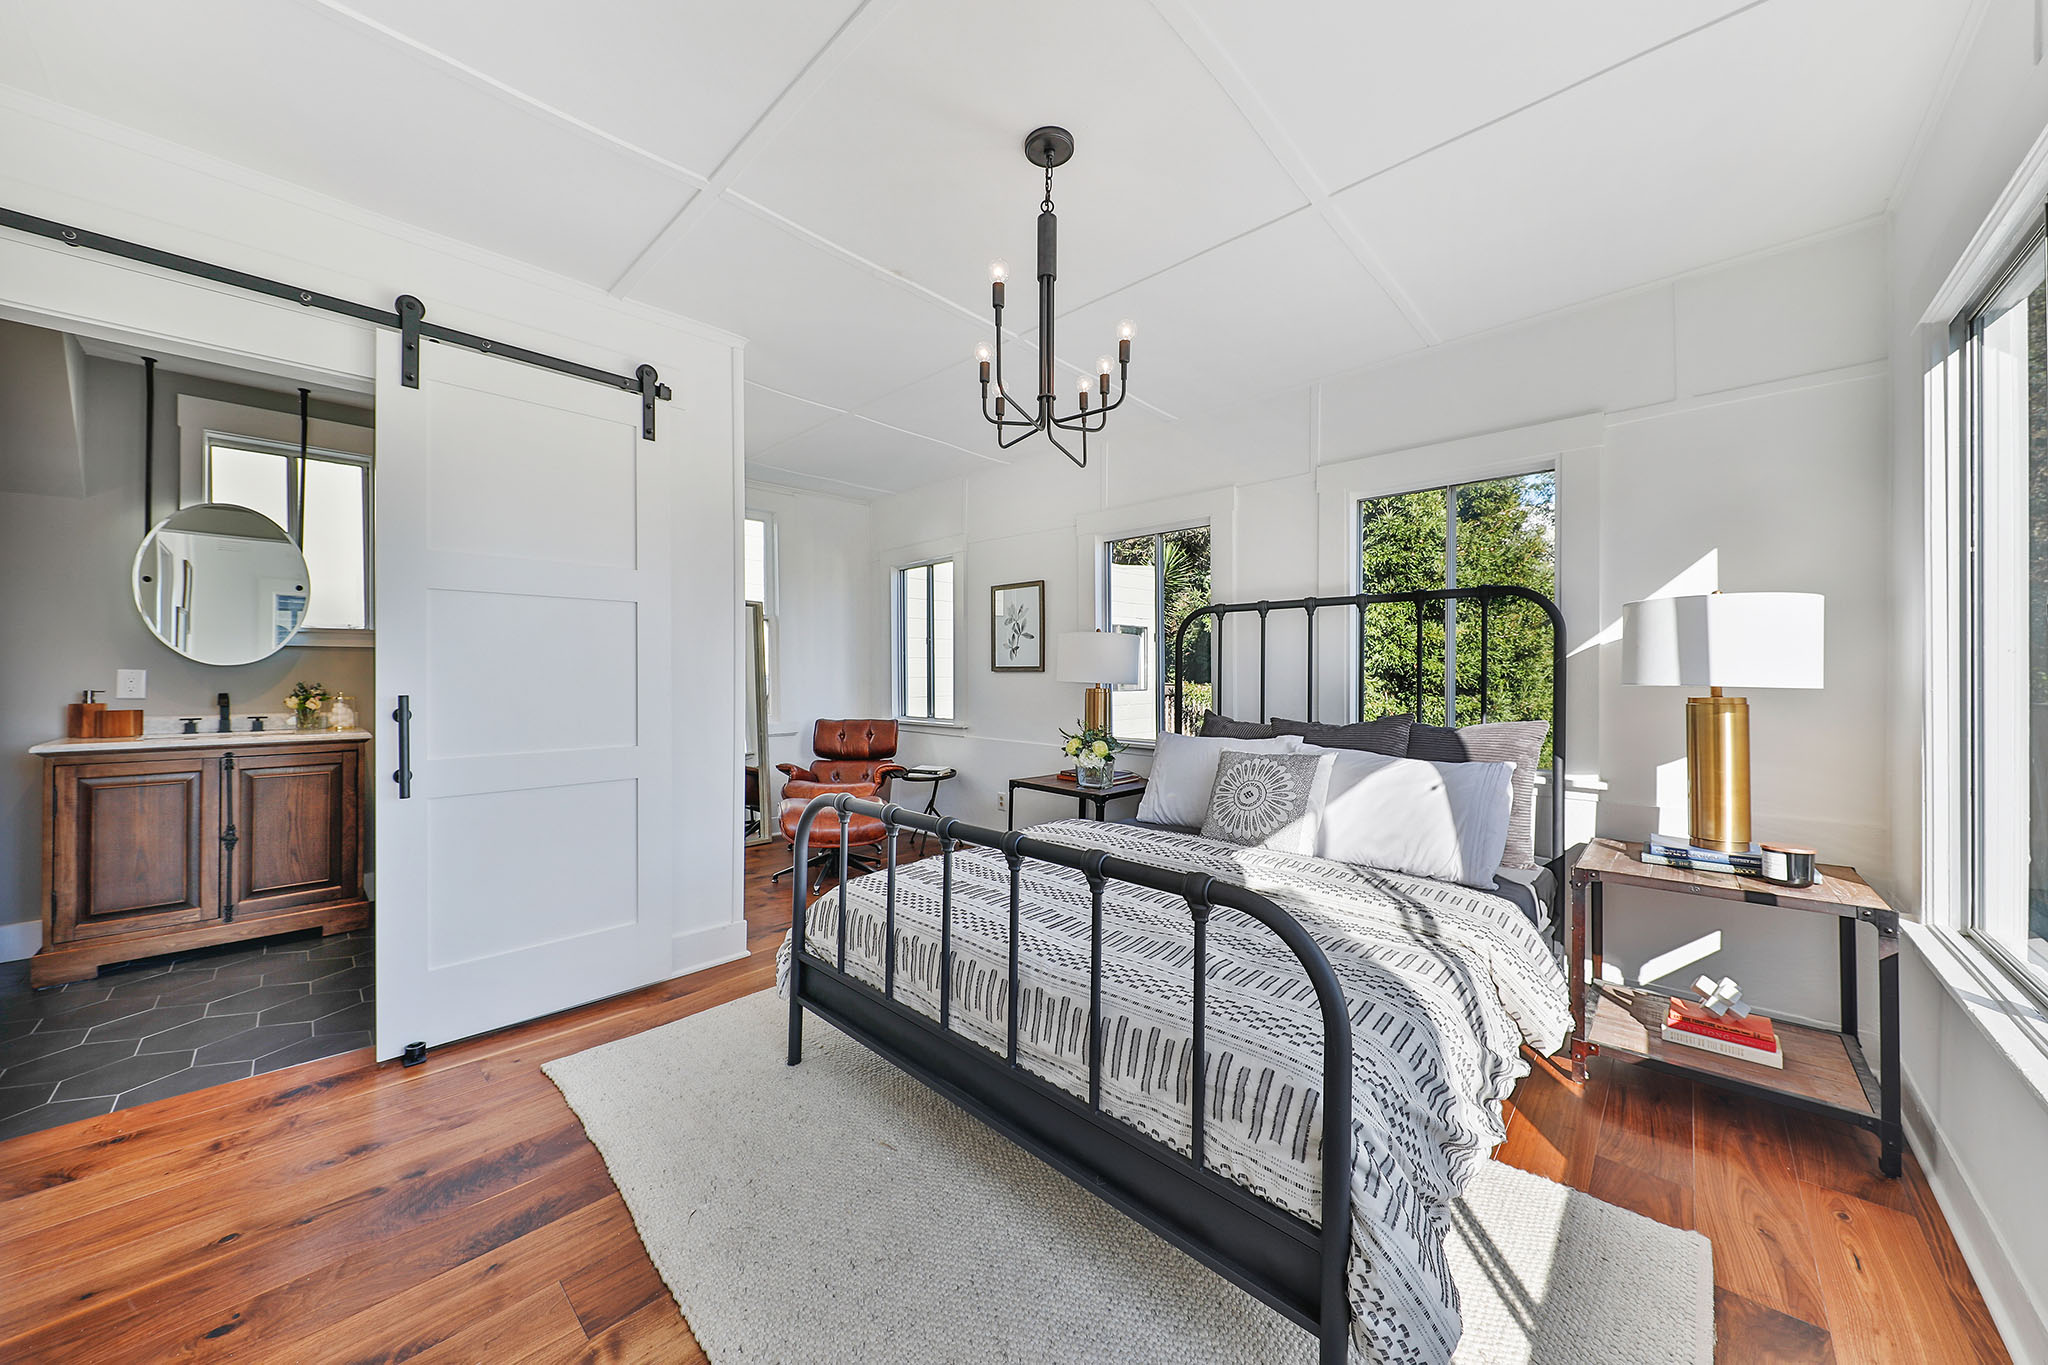 SF Real Estate - Master Room with Full Bath